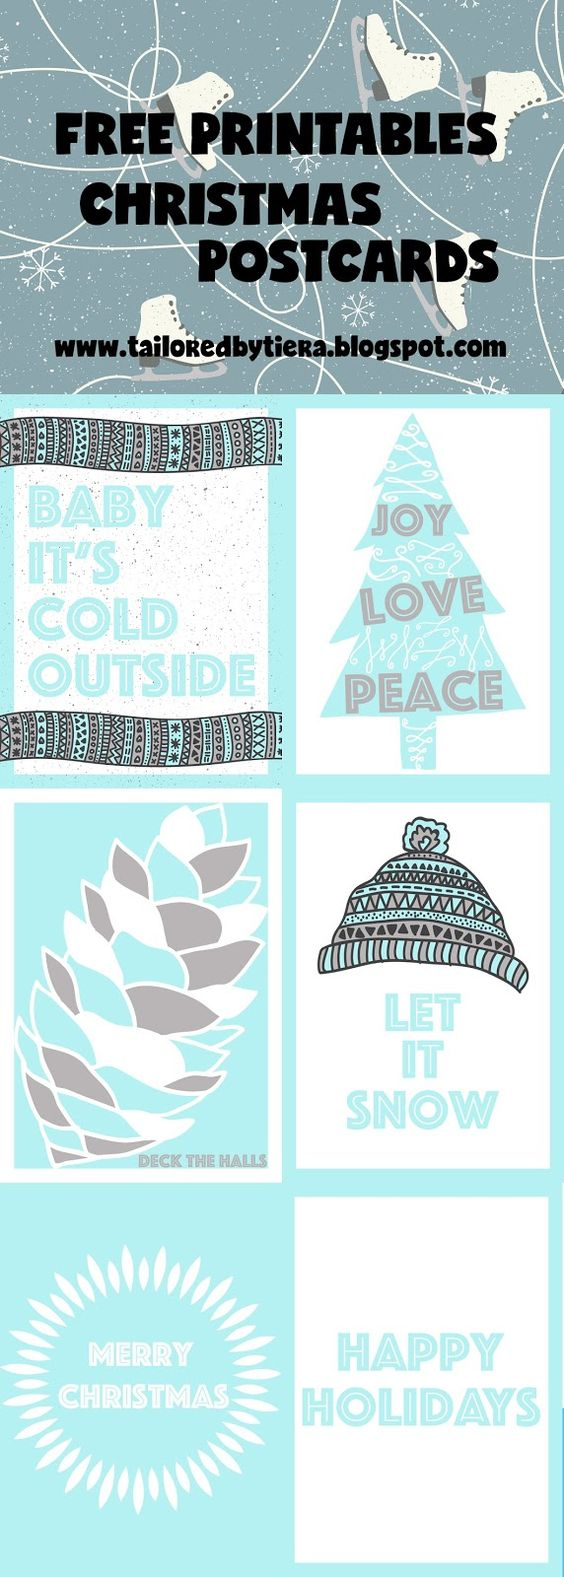 Christmas Postcards: Blue and White  Christmas / Happy Holidays / Christmas Tree / Snow / Merry Christmas/ Joy, Love, Peace  5x7 Prints: